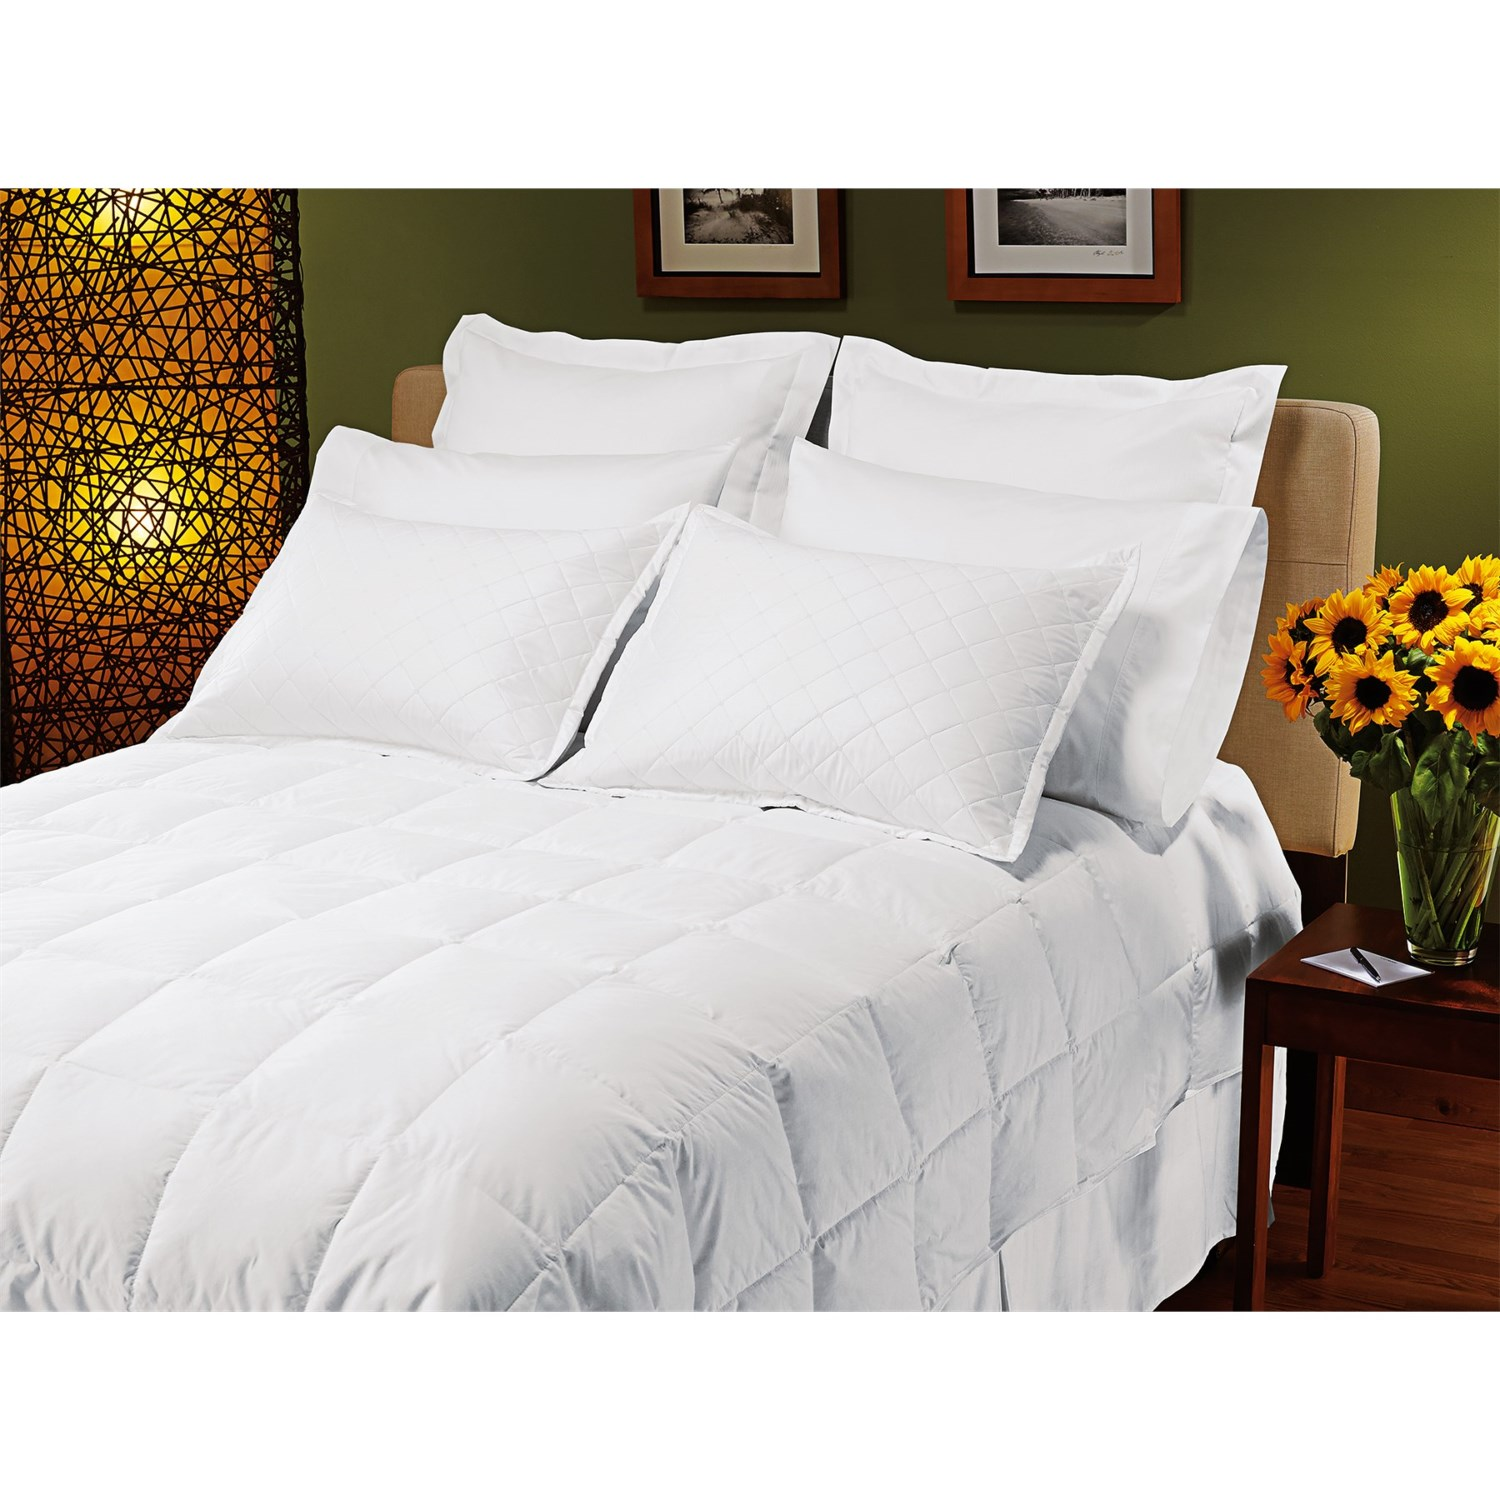 down inc cambric cotton down alternative comforter california king midweight 7741v save 42. Black Bedroom Furniture Sets. Home Design Ideas